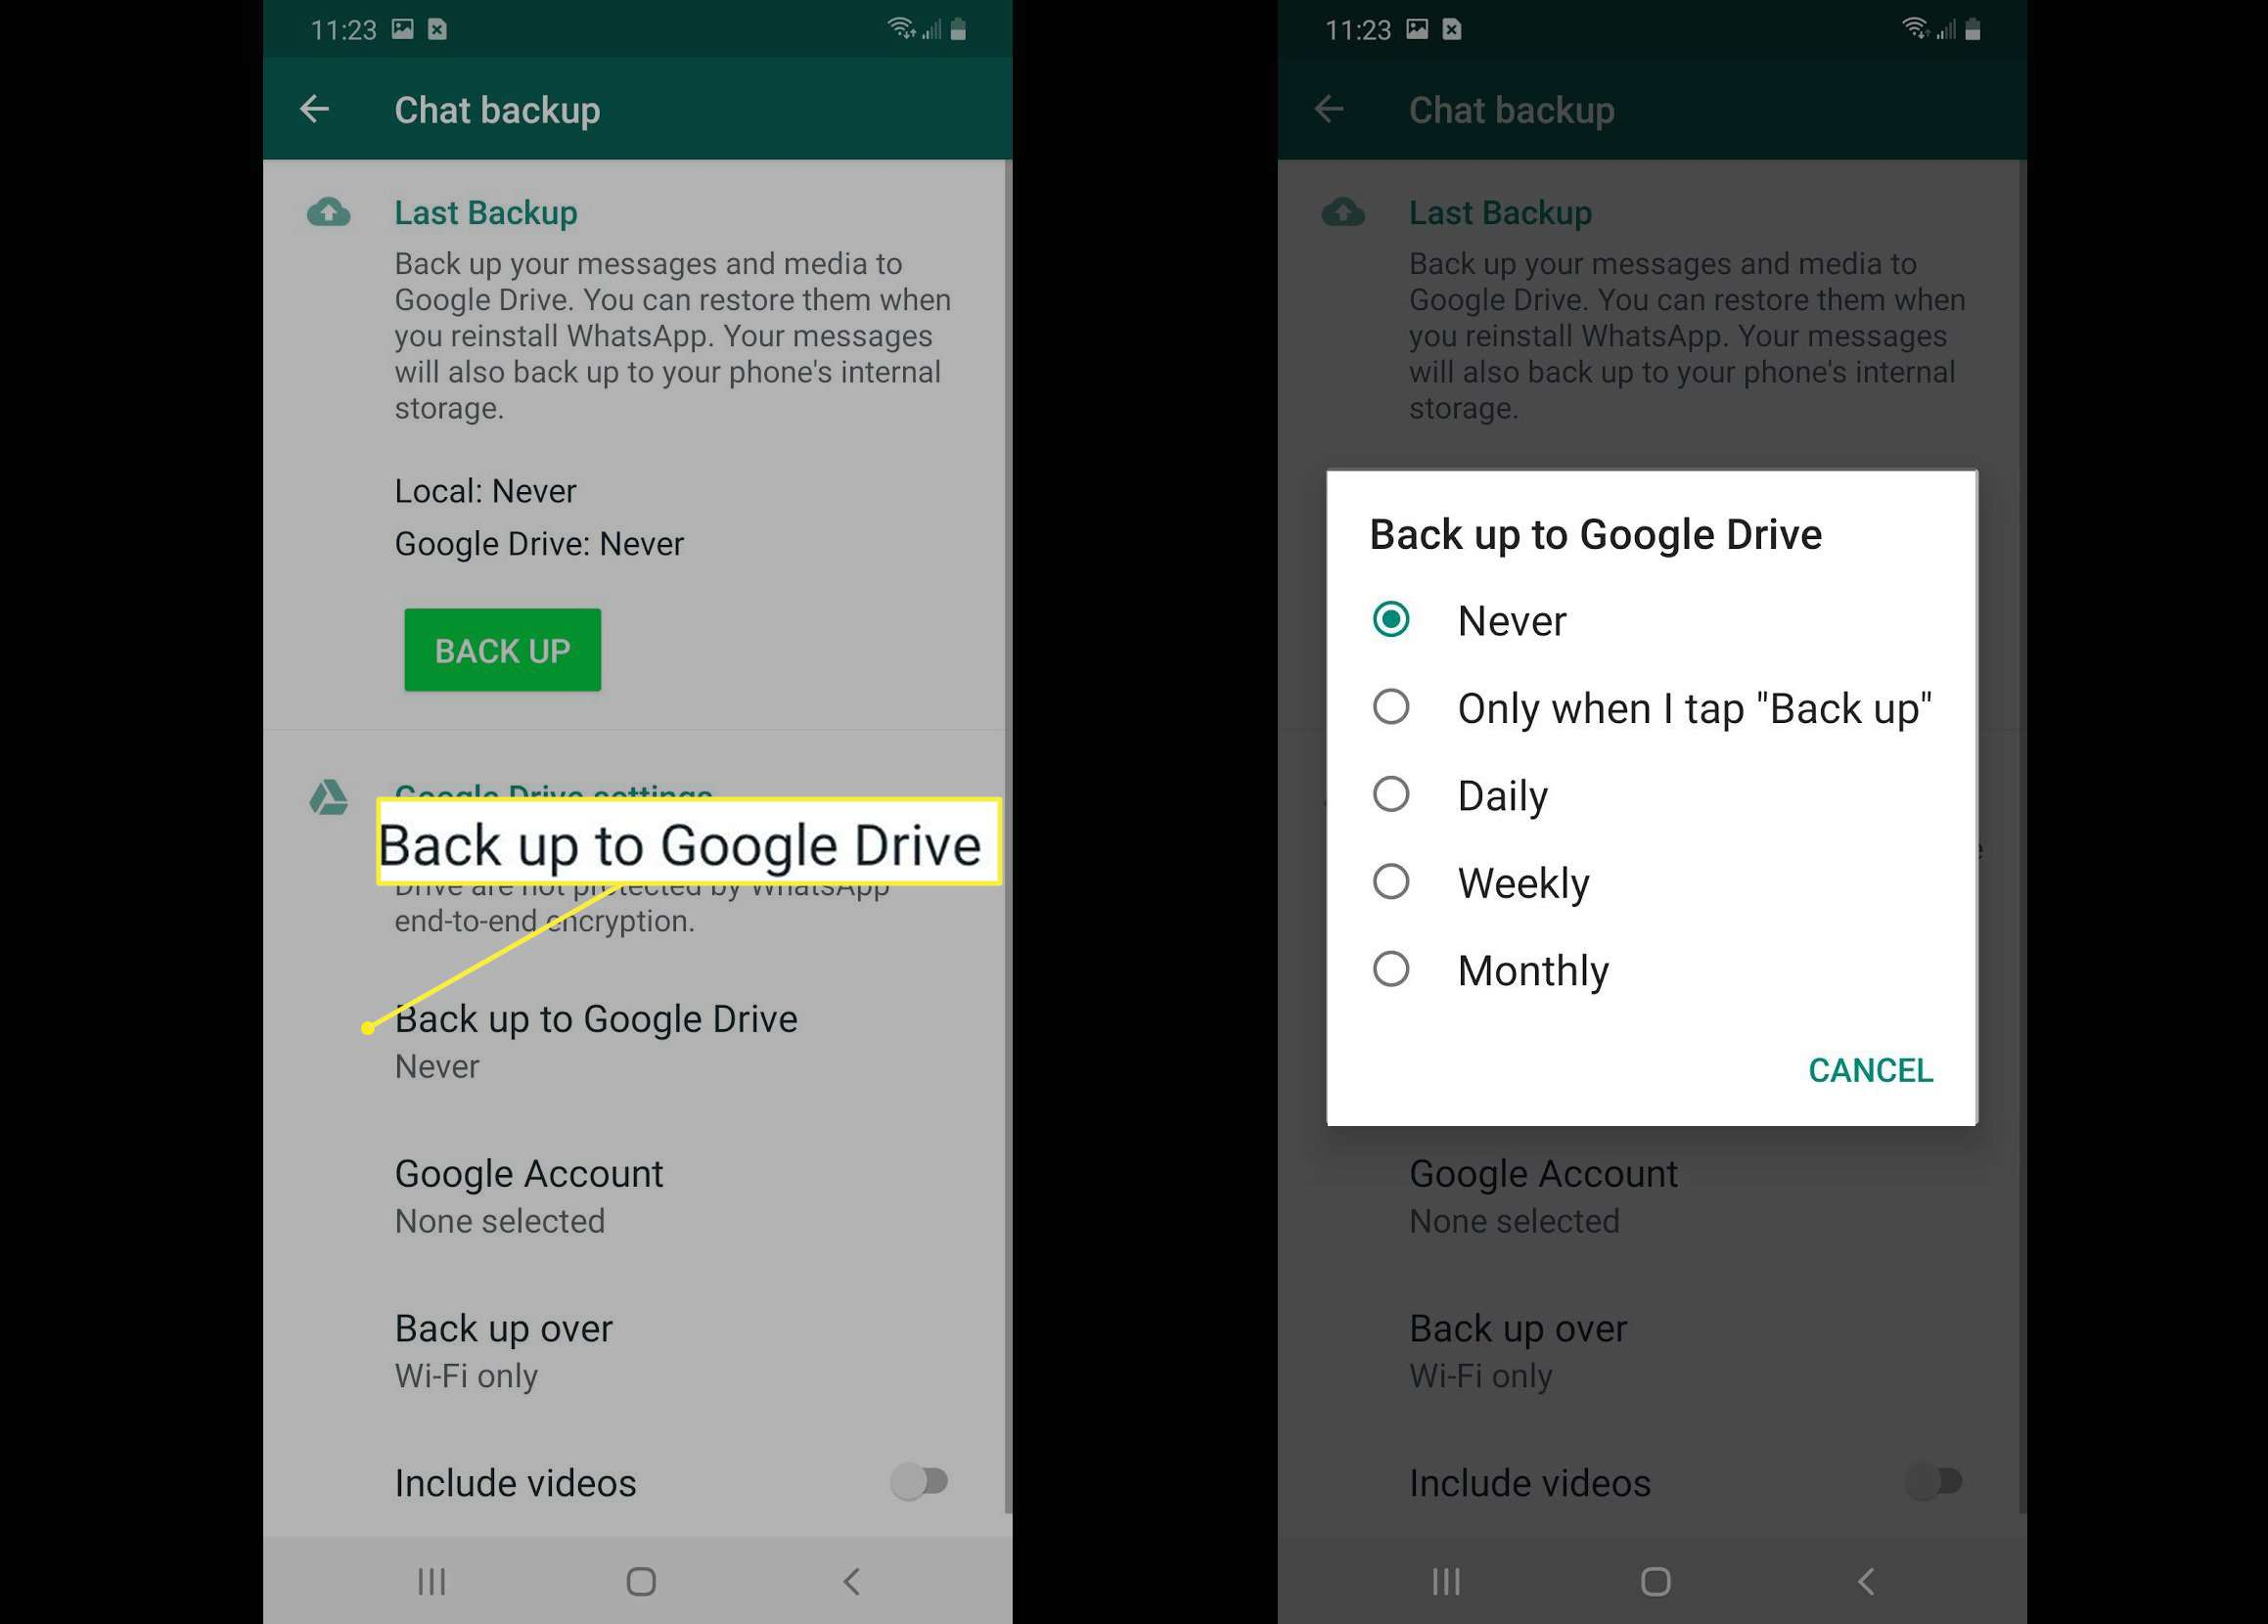 Back up to Google Drive options